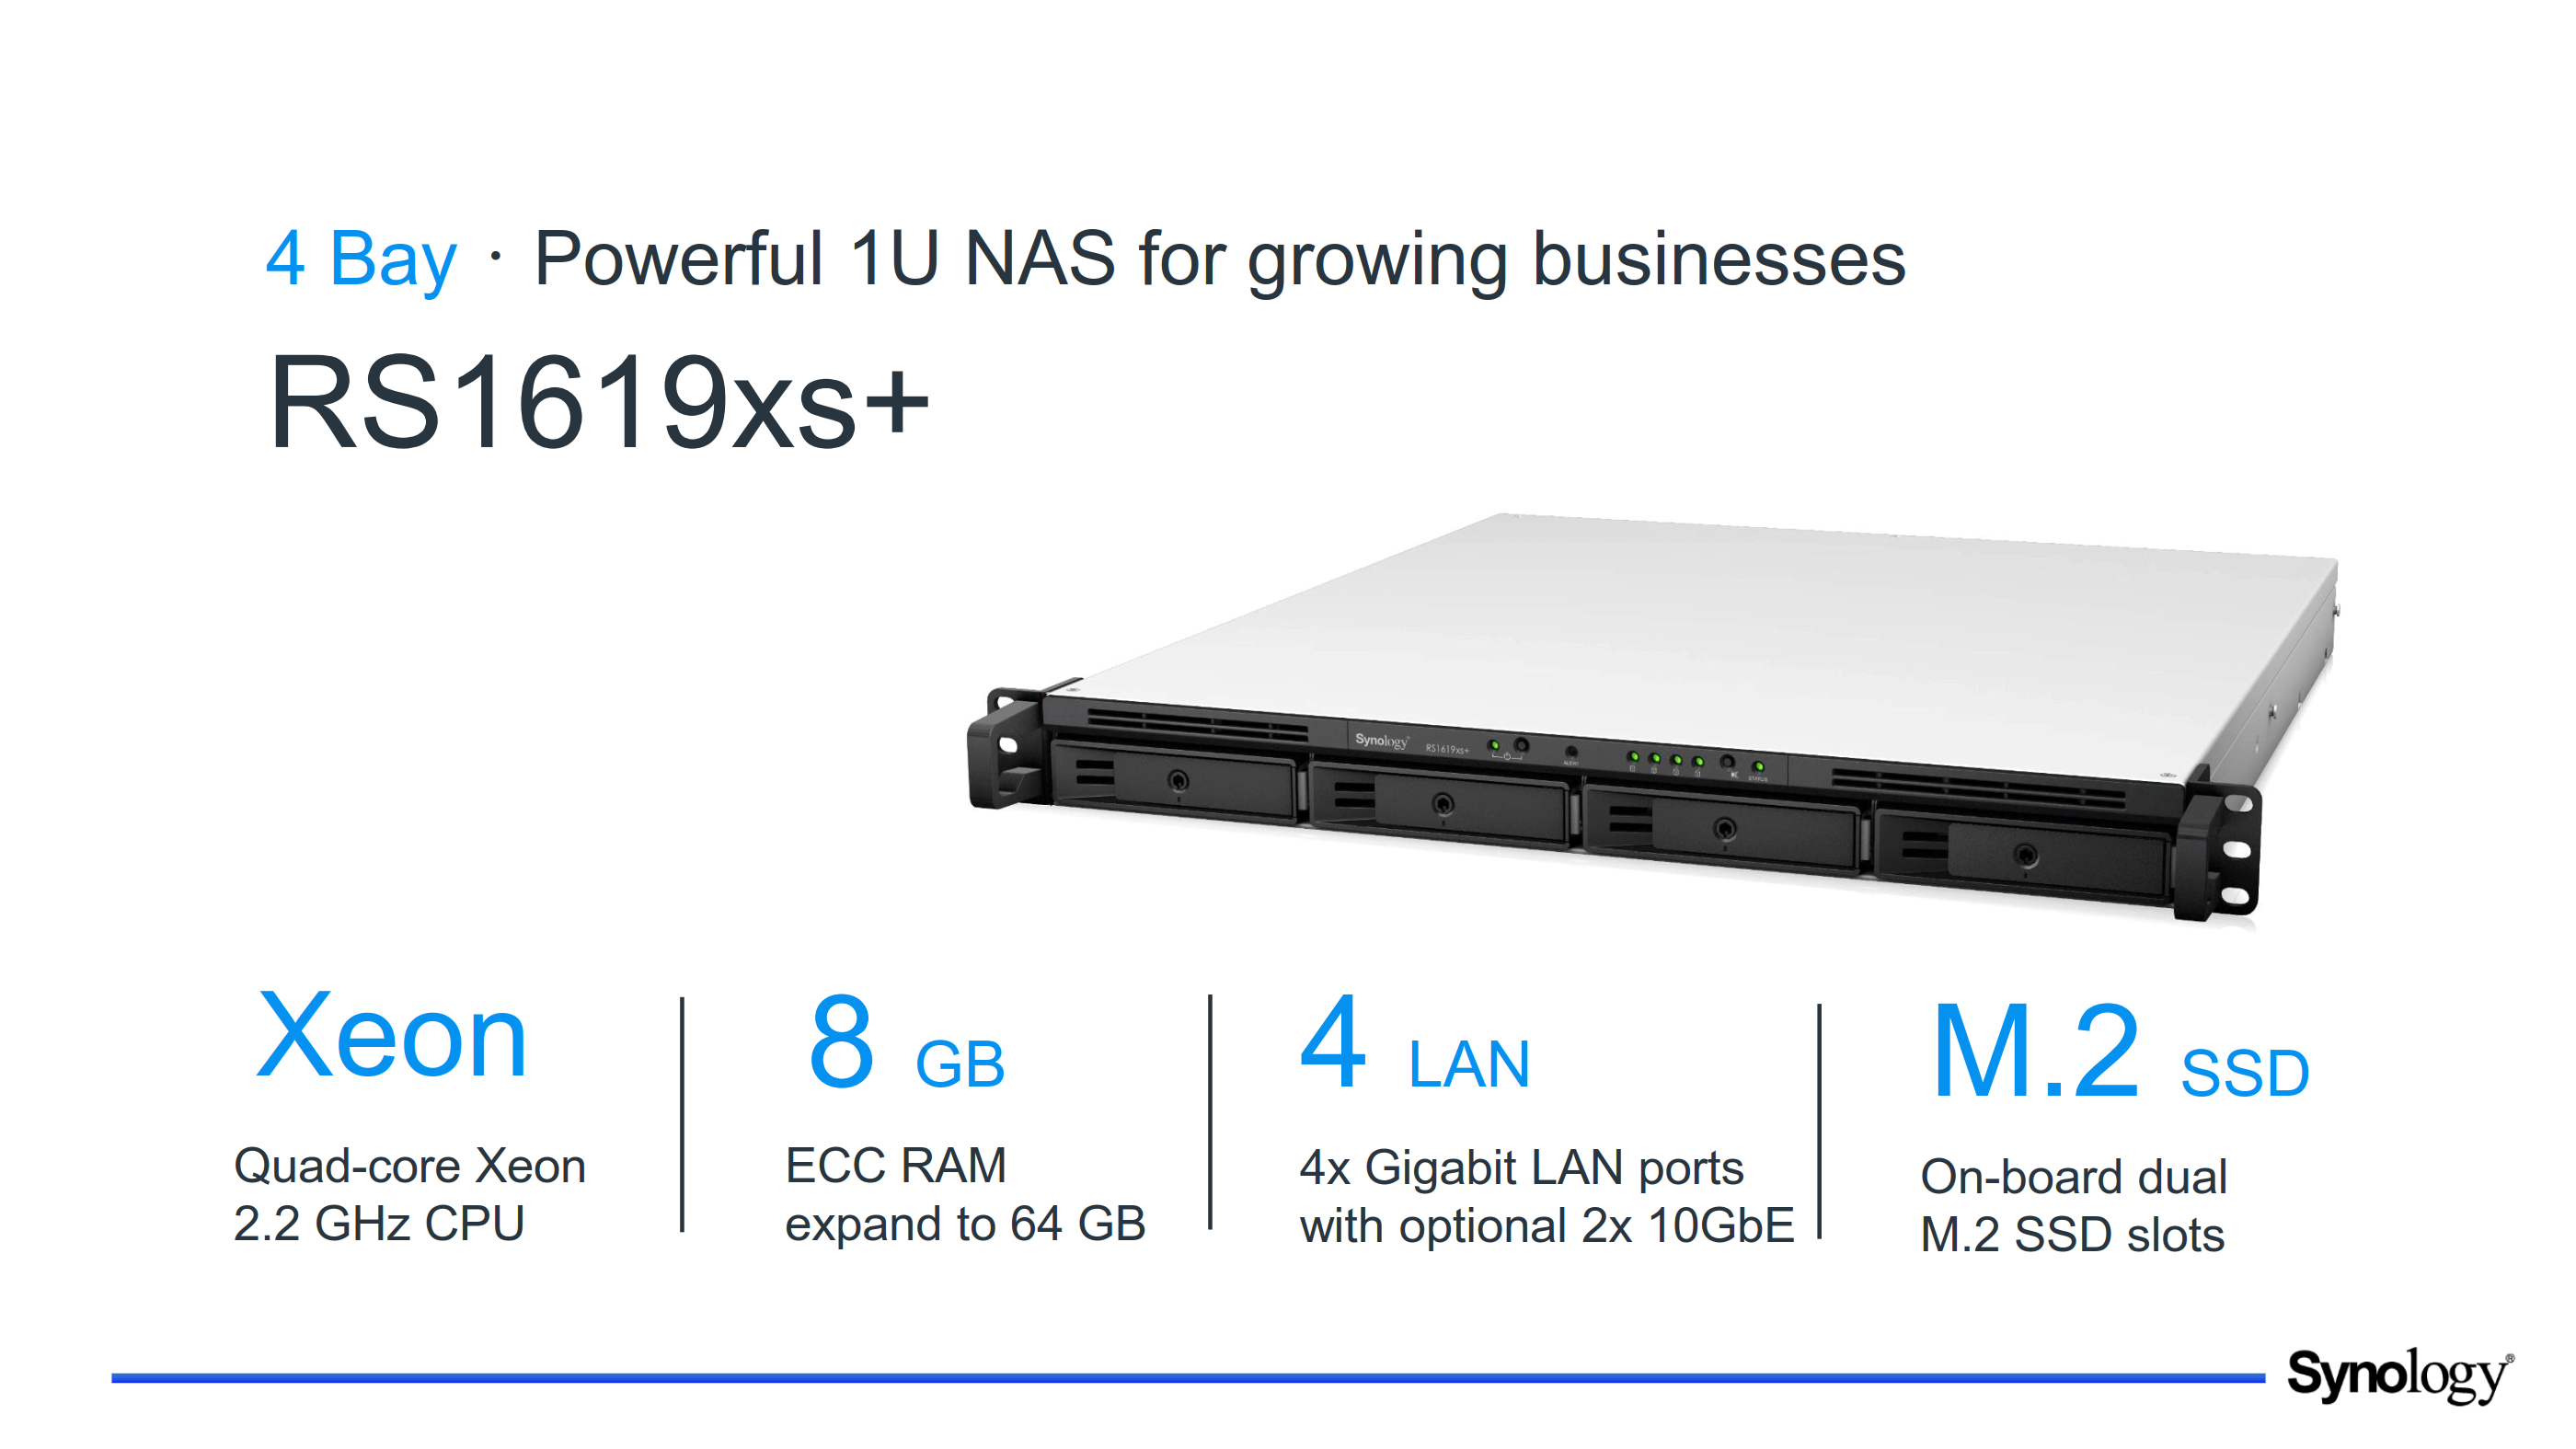 Synology 2018 NAS and Wi-Fi Lineup Sneak Peek